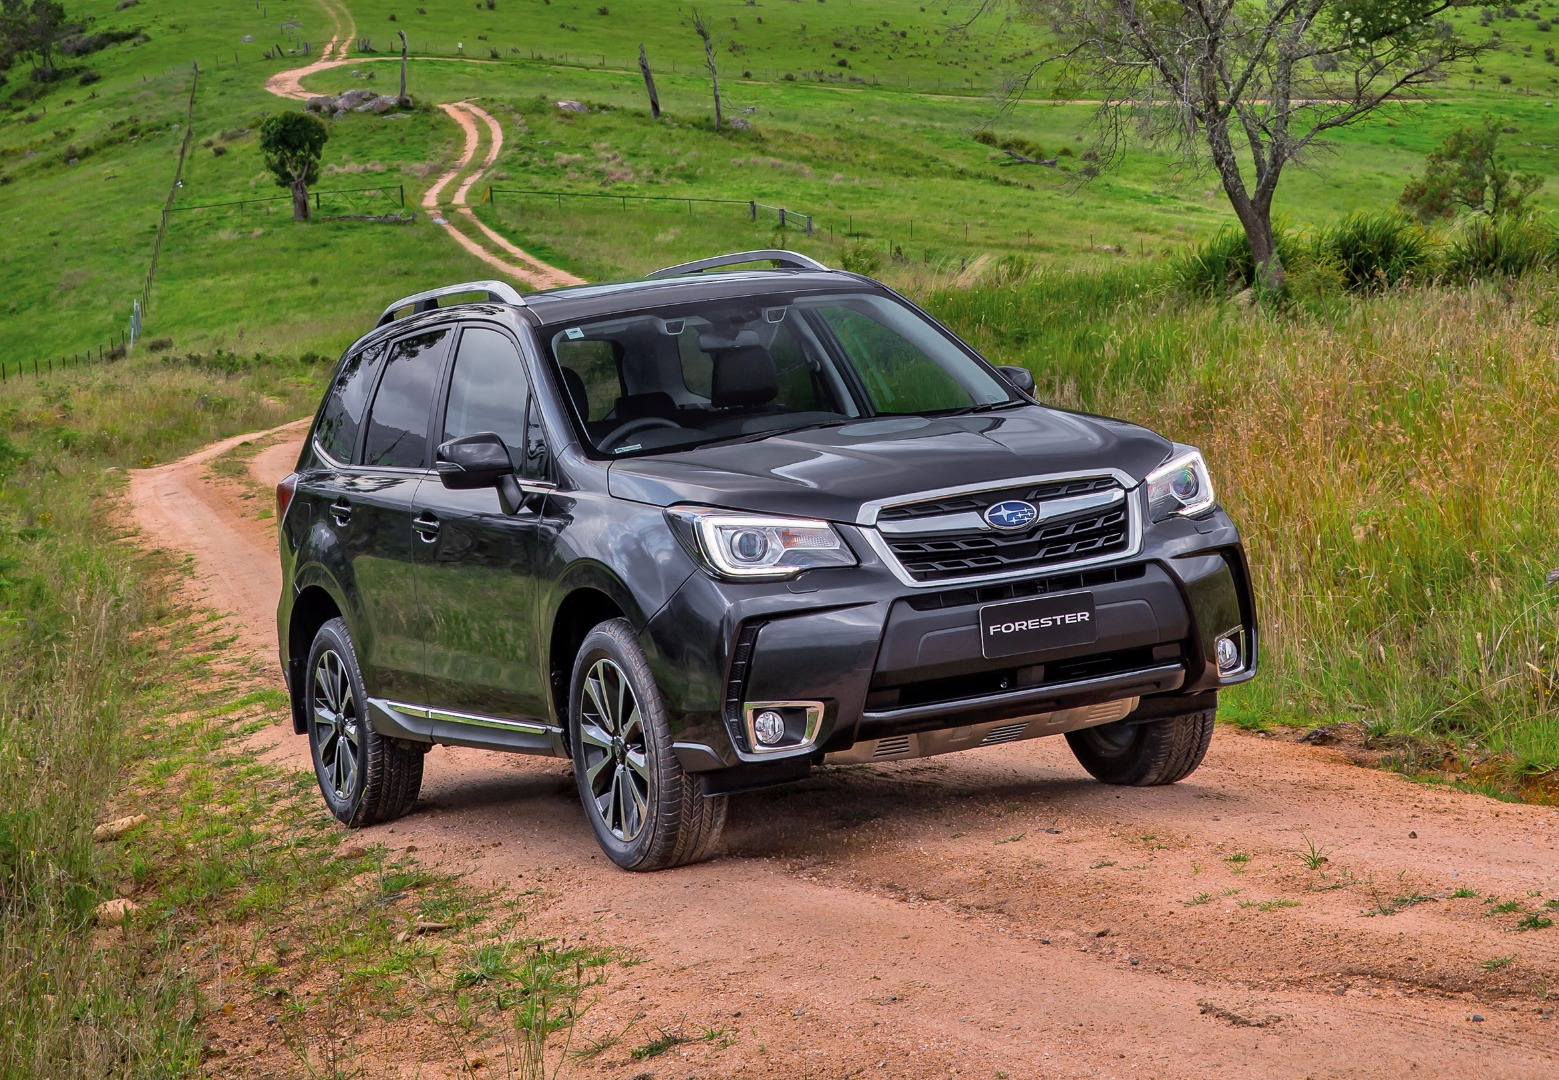 Subaru Forester 2 0 Xt Premium >> Review - 2016 Subaru Forester XT - Review